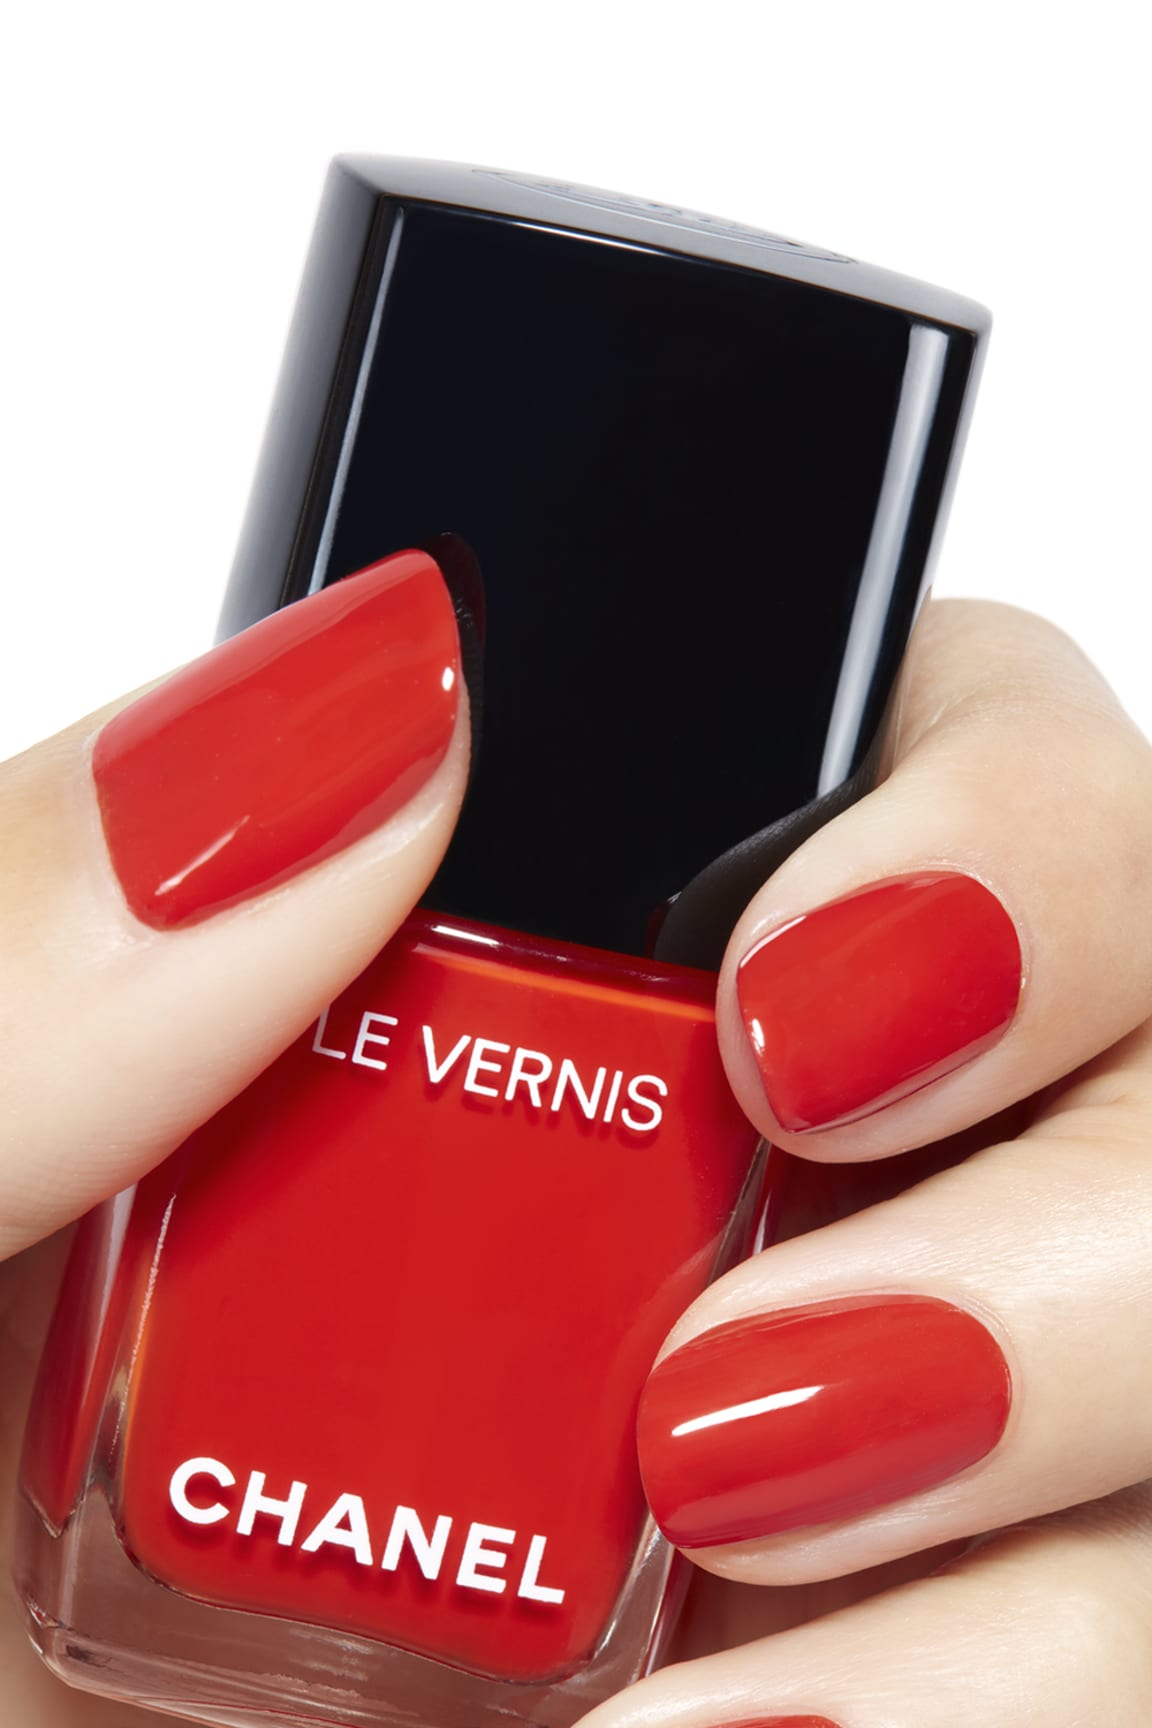 Application makeup visual 2 - LE VERNIS 634 - ARANCIO VIBRANTE